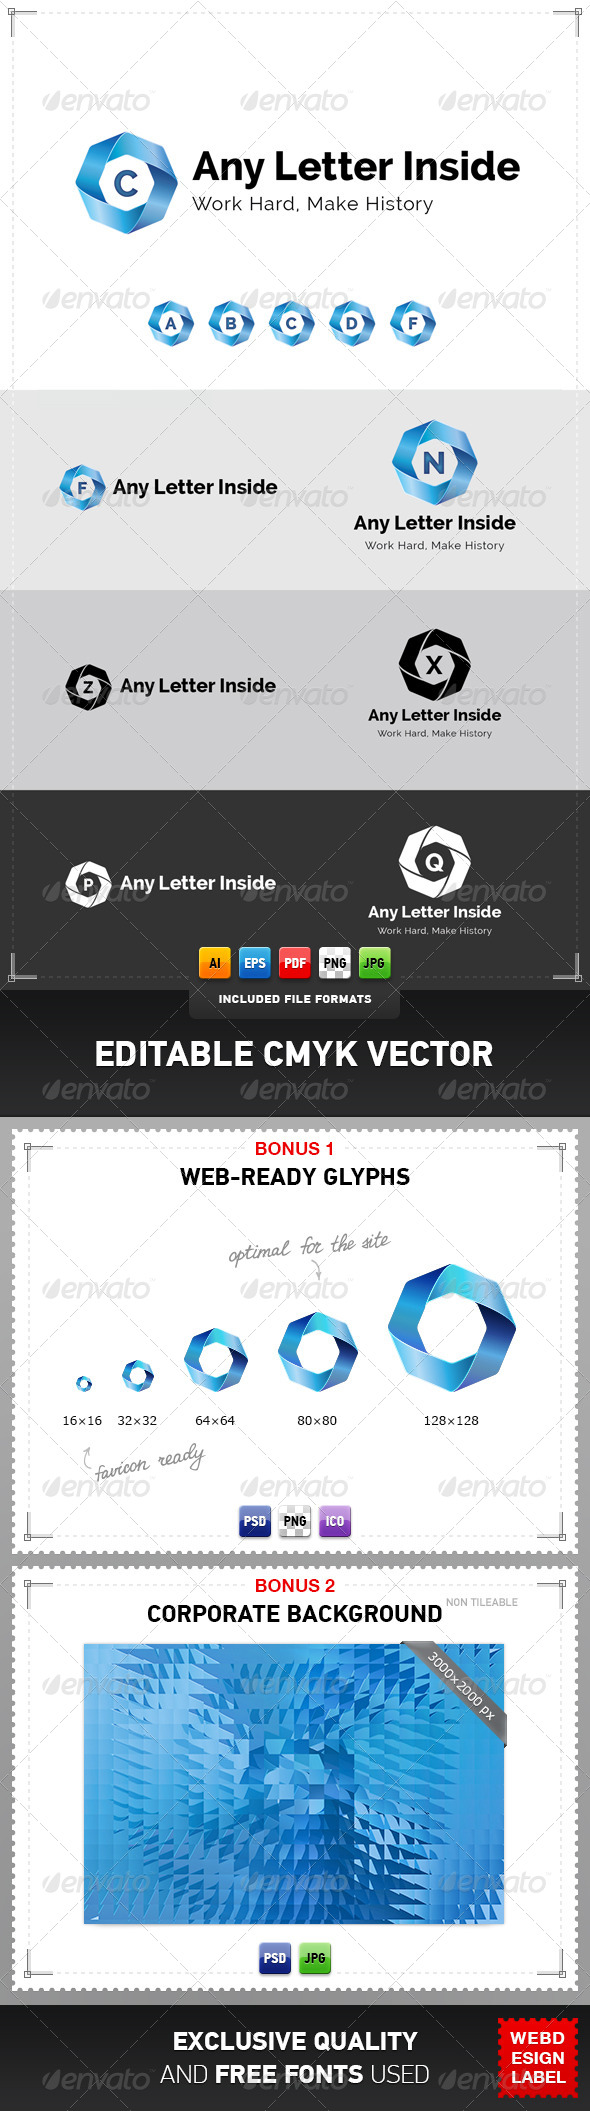 GraphicRiver Any Letter Inside Logo 4079172